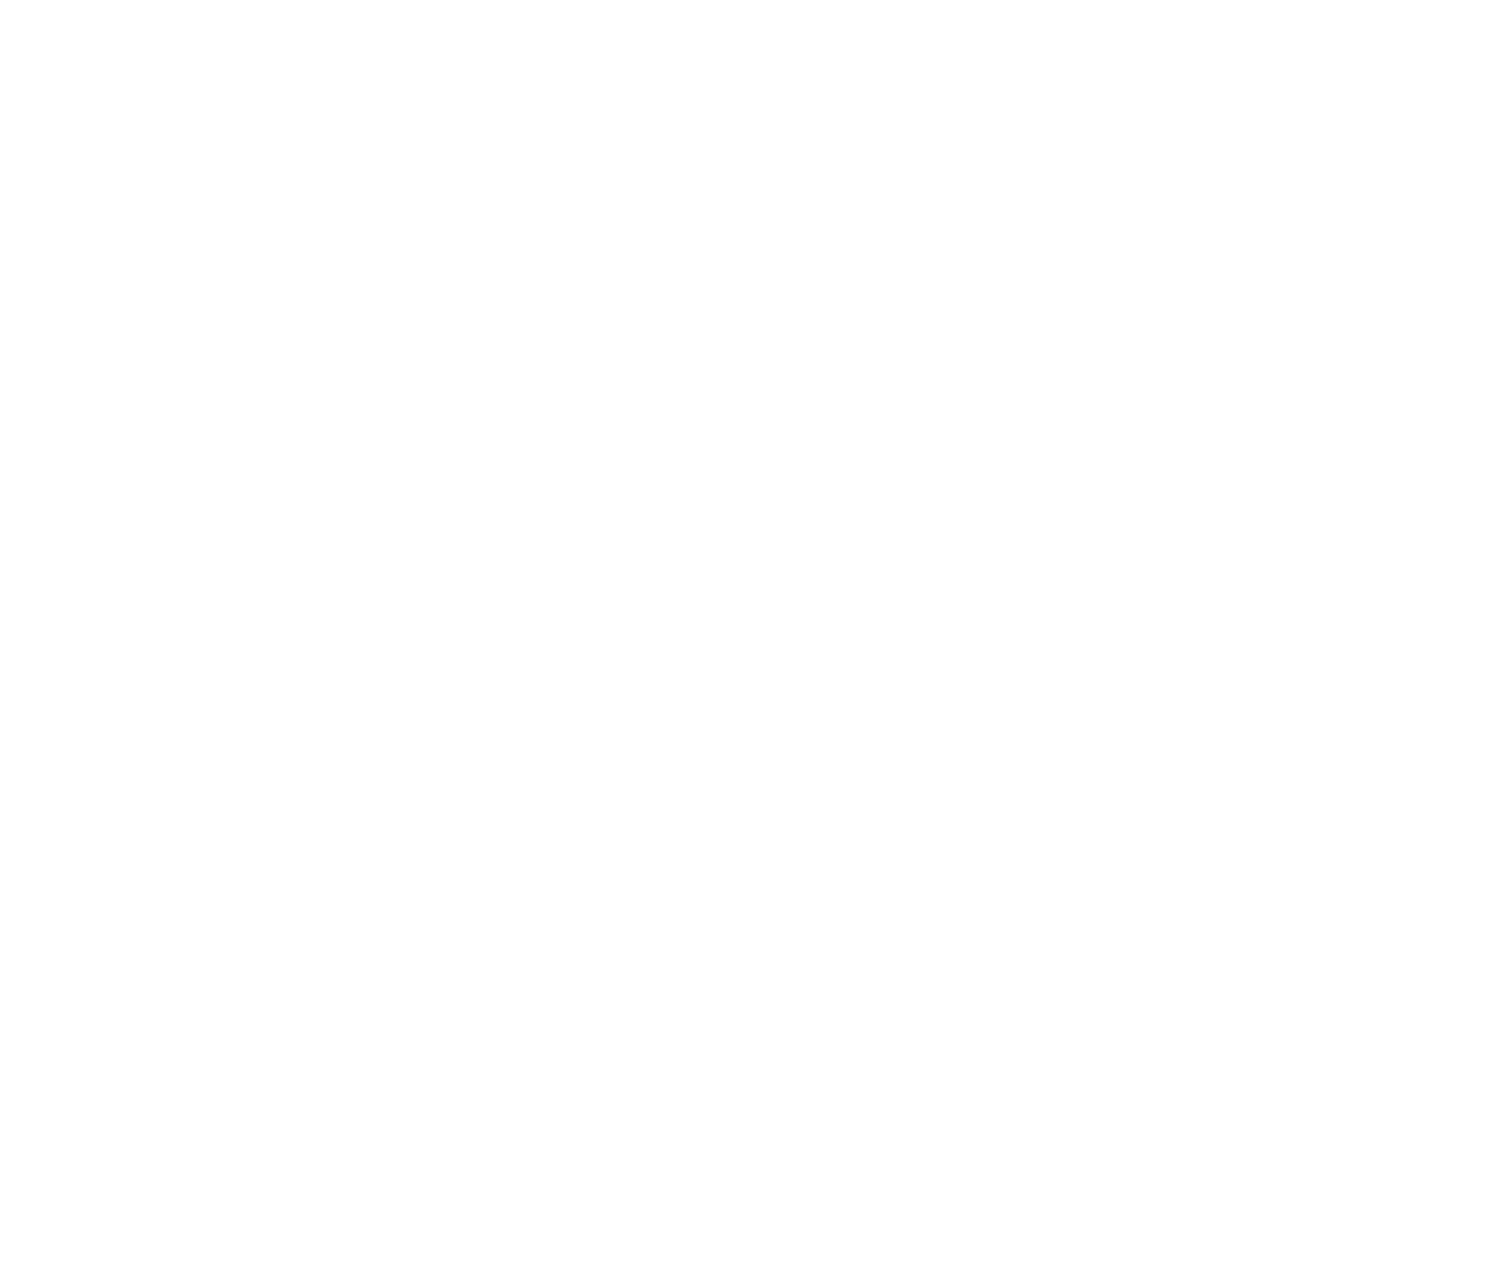 Walczak Design+Build